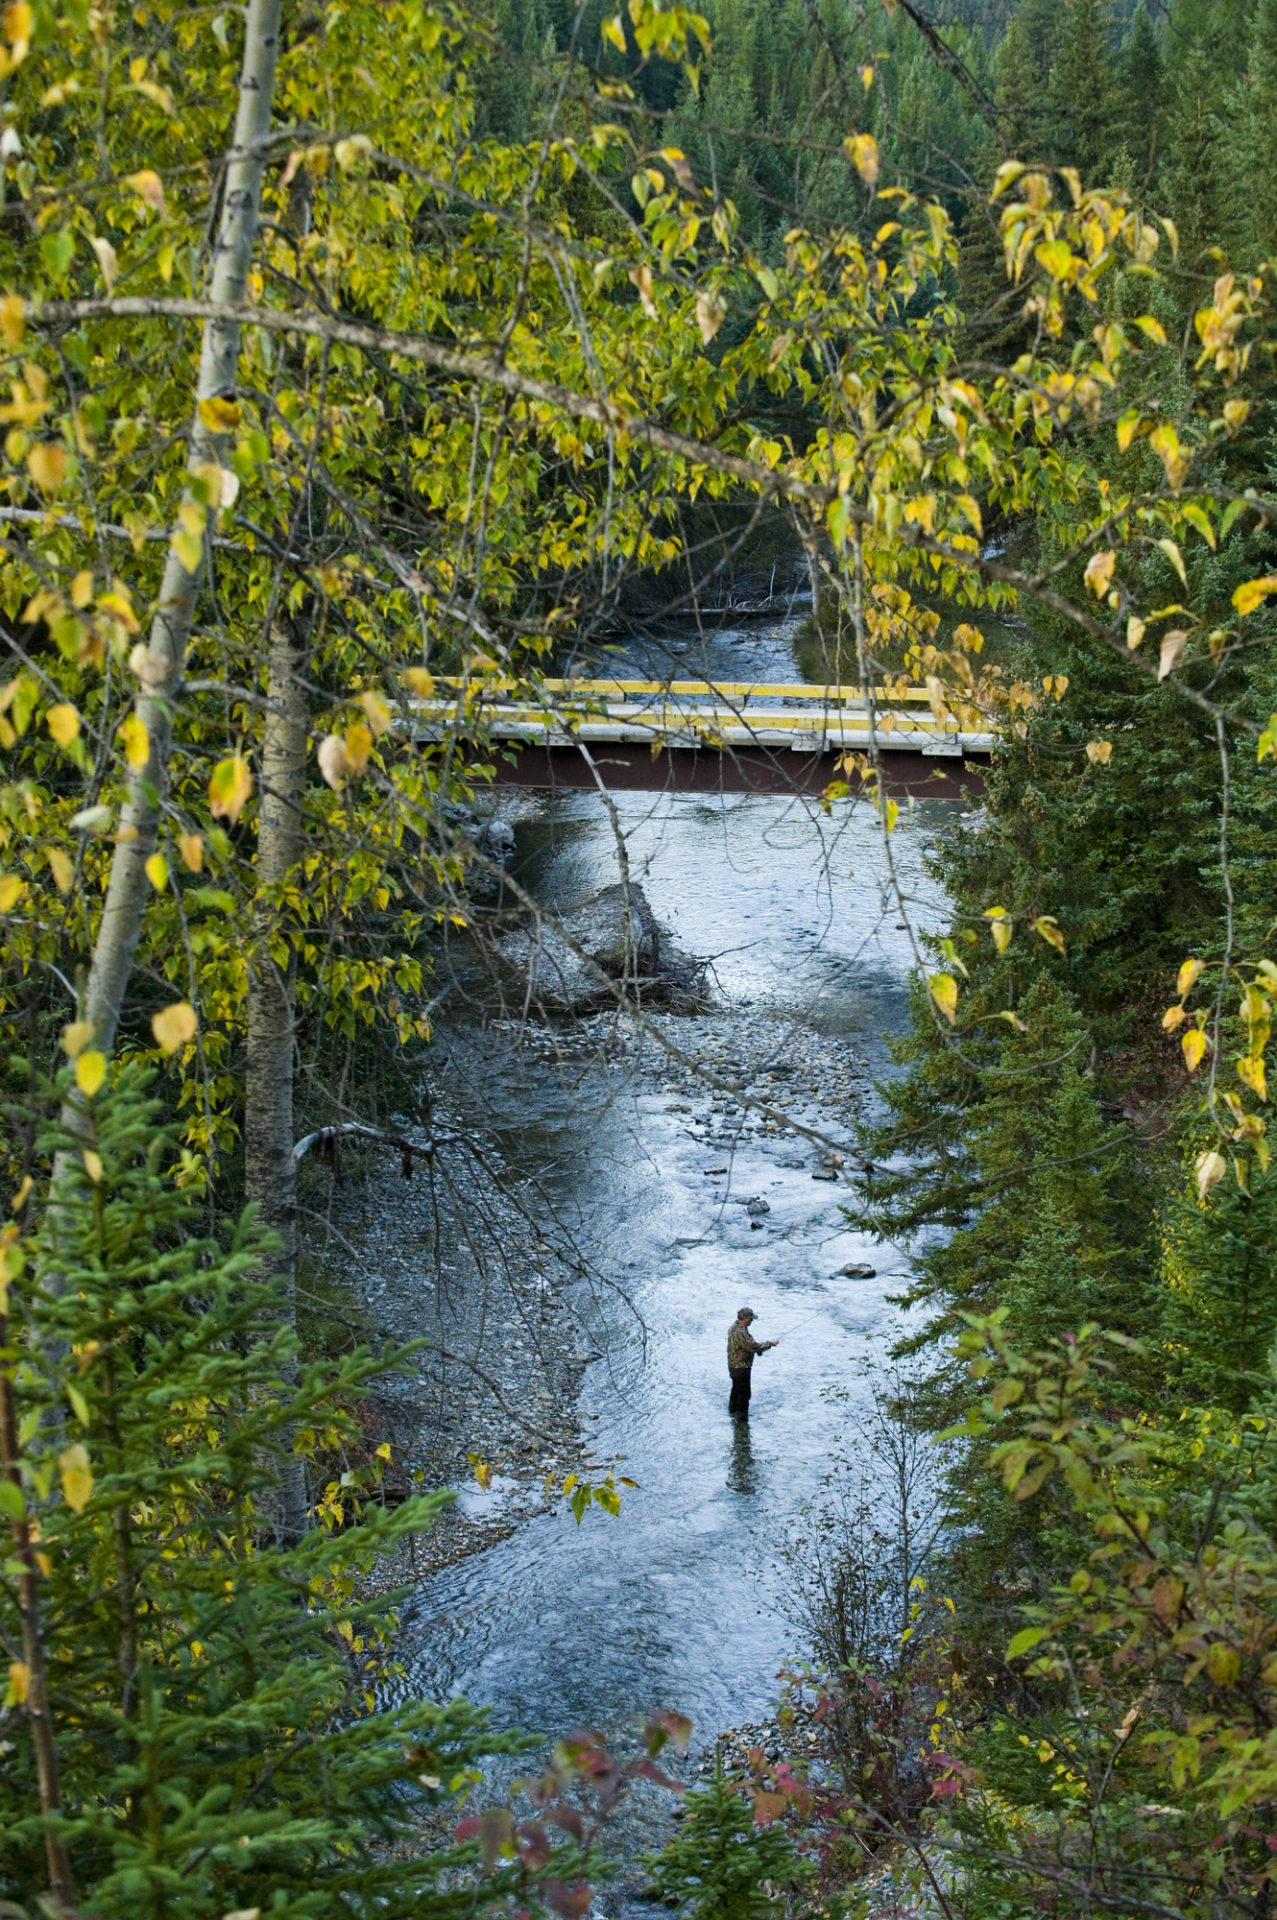 Photo: A fisherman in Bighorn Creek, part of the Kootenay River system.